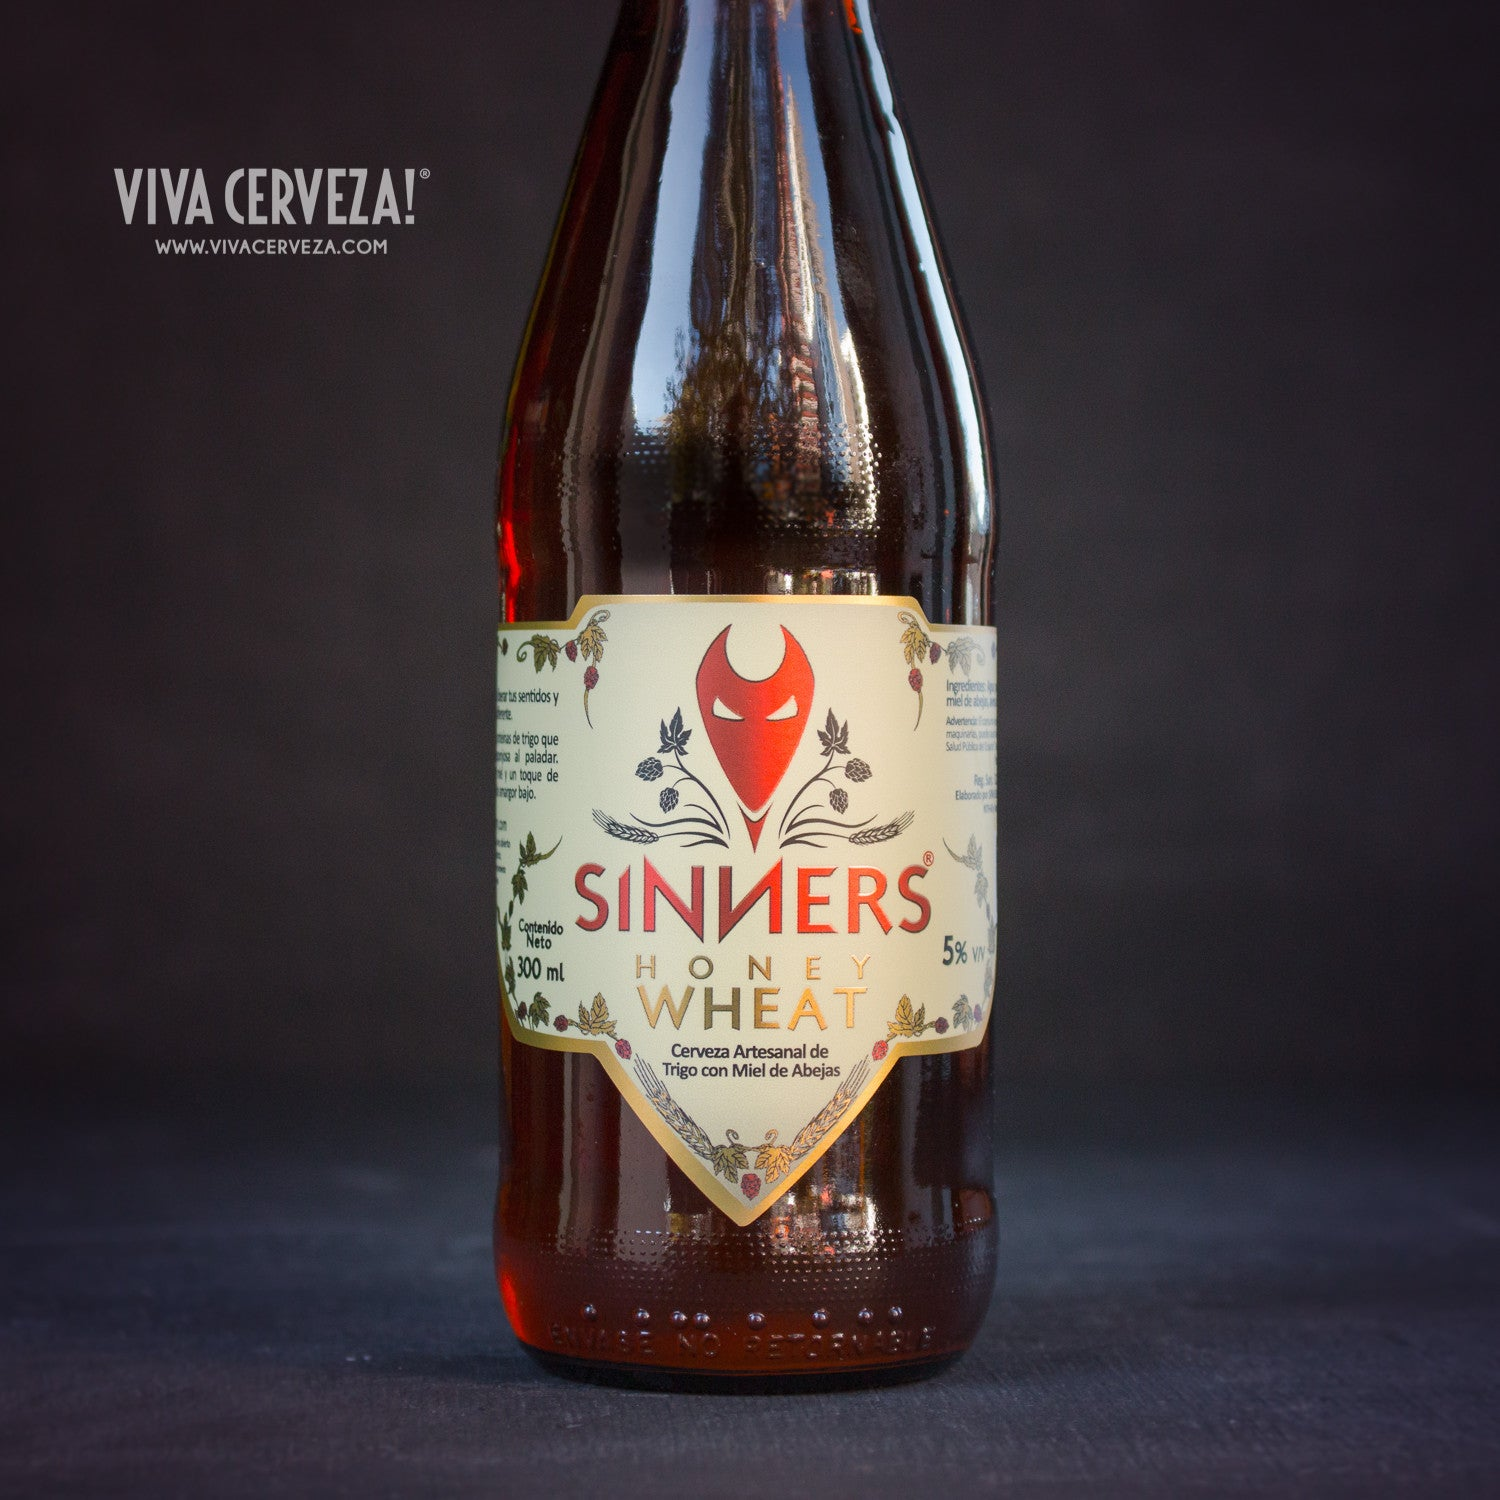 Sinners Honey Wheat